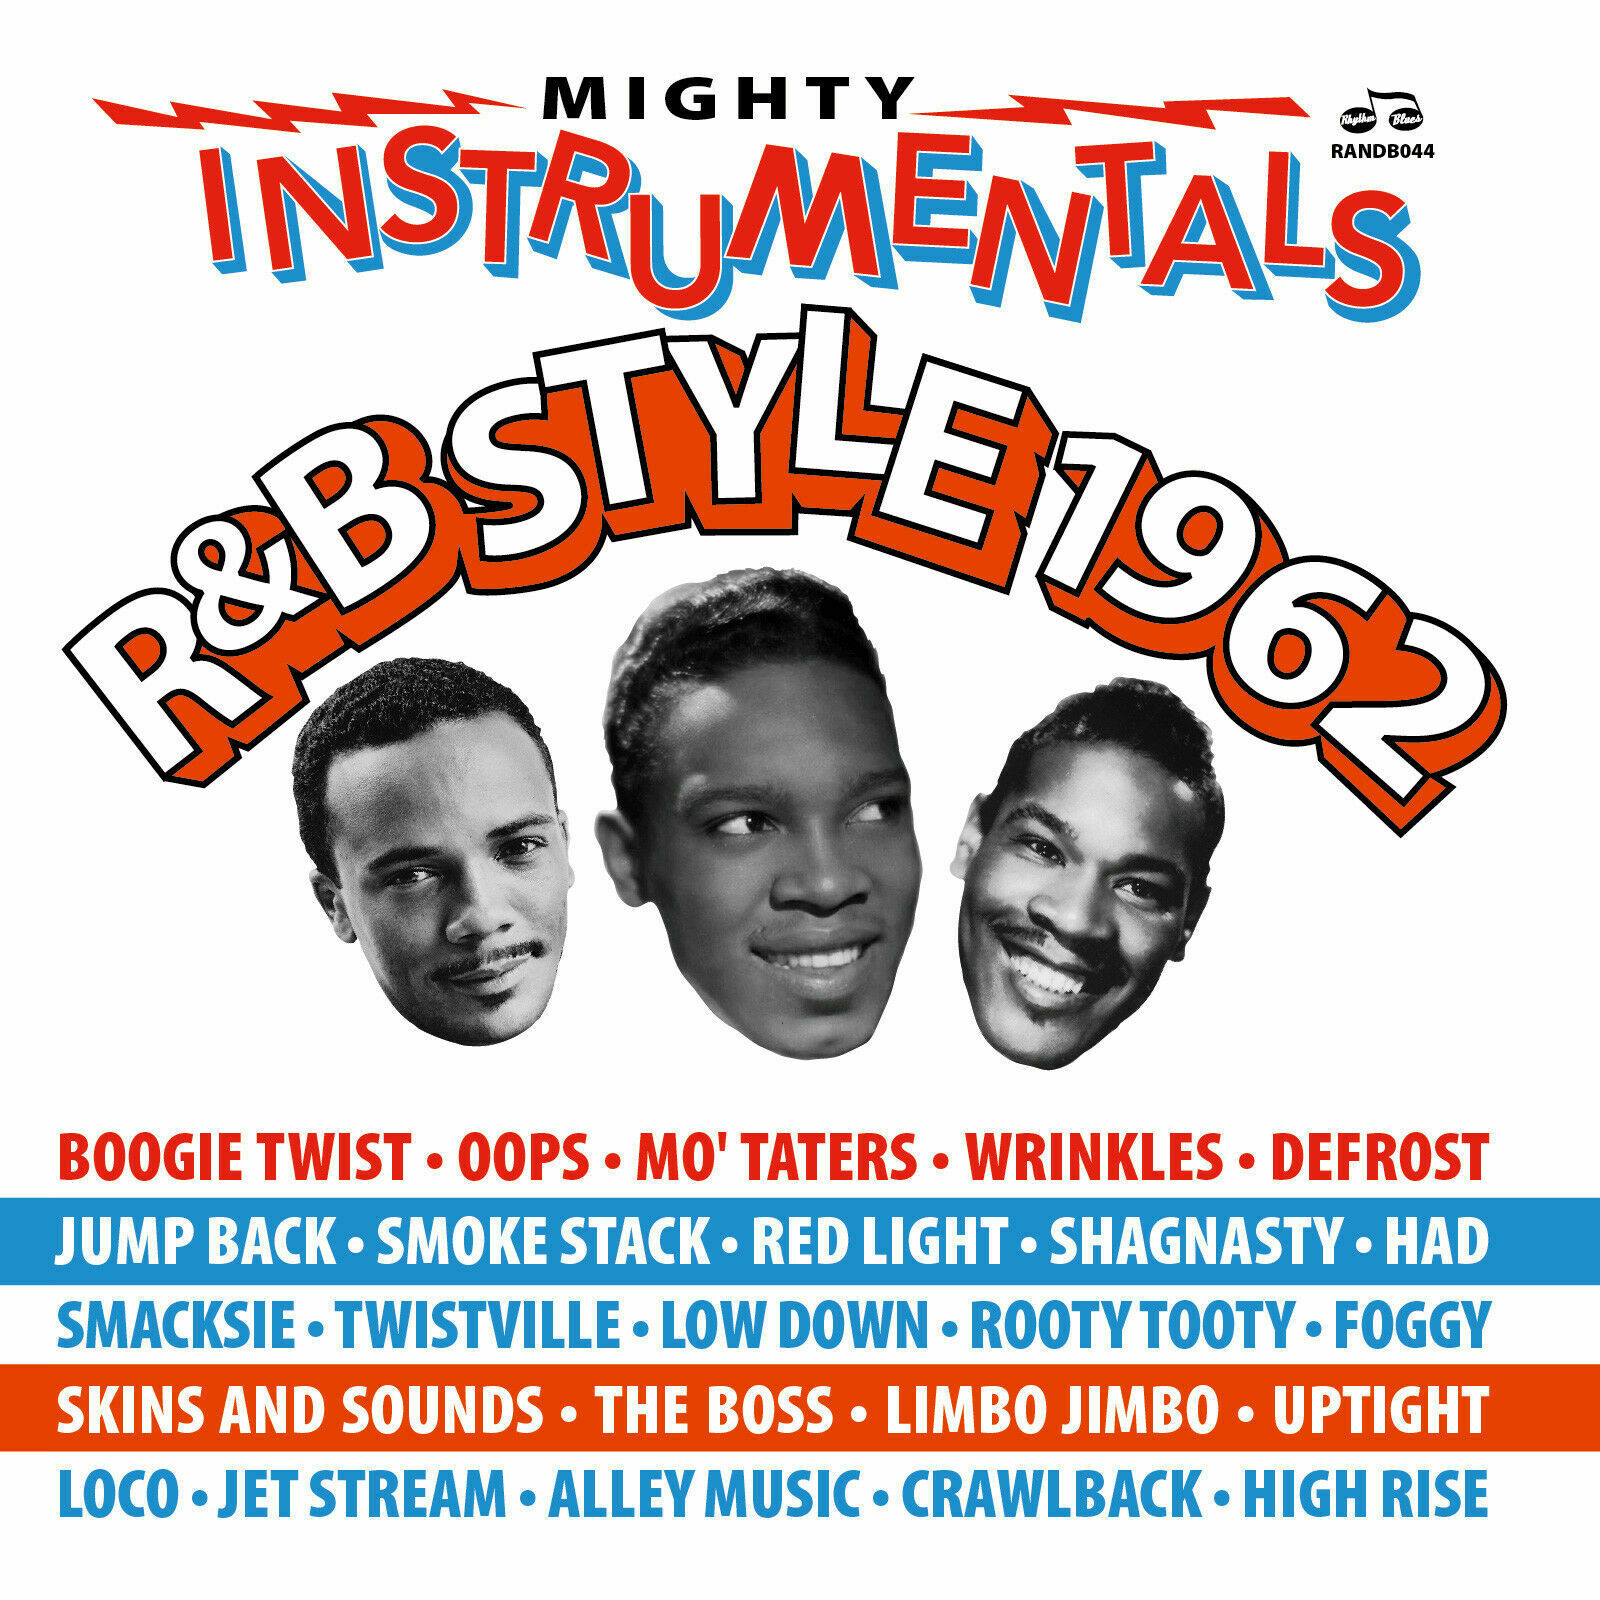 VARIOUS ARTISTS - MIGHTY INSTRUMENTALS R B-STYLE 1962 Played Once CD PLUS GIFT  - $19.99